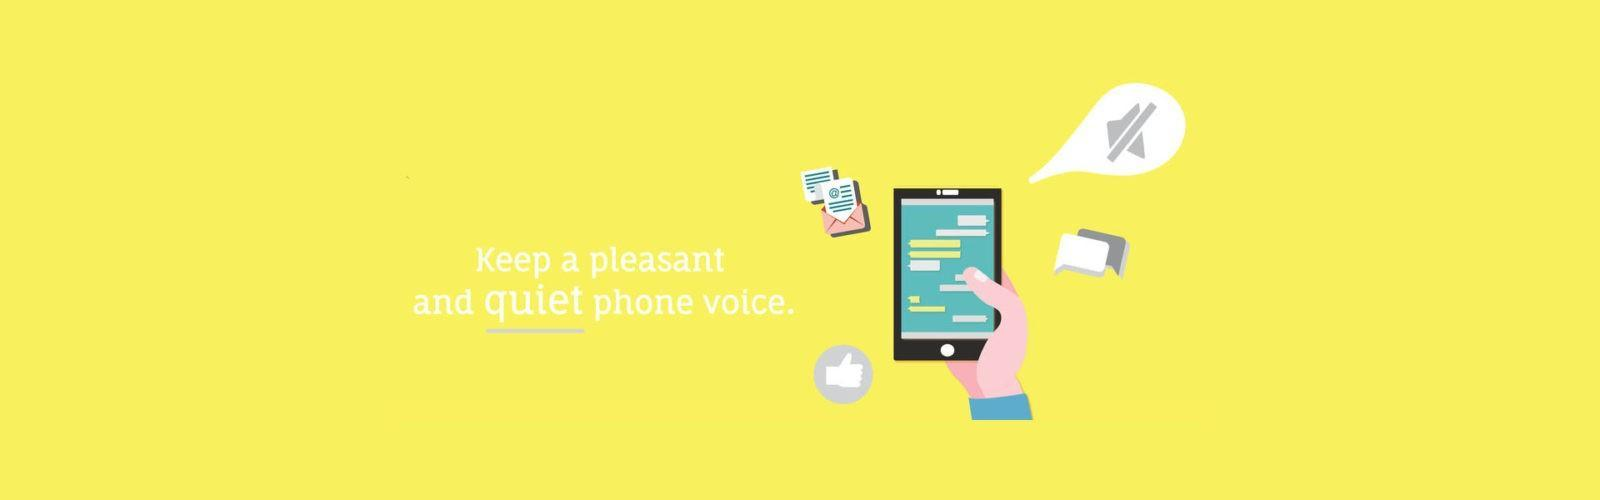 Keep a pleasant and quiet phone voice.